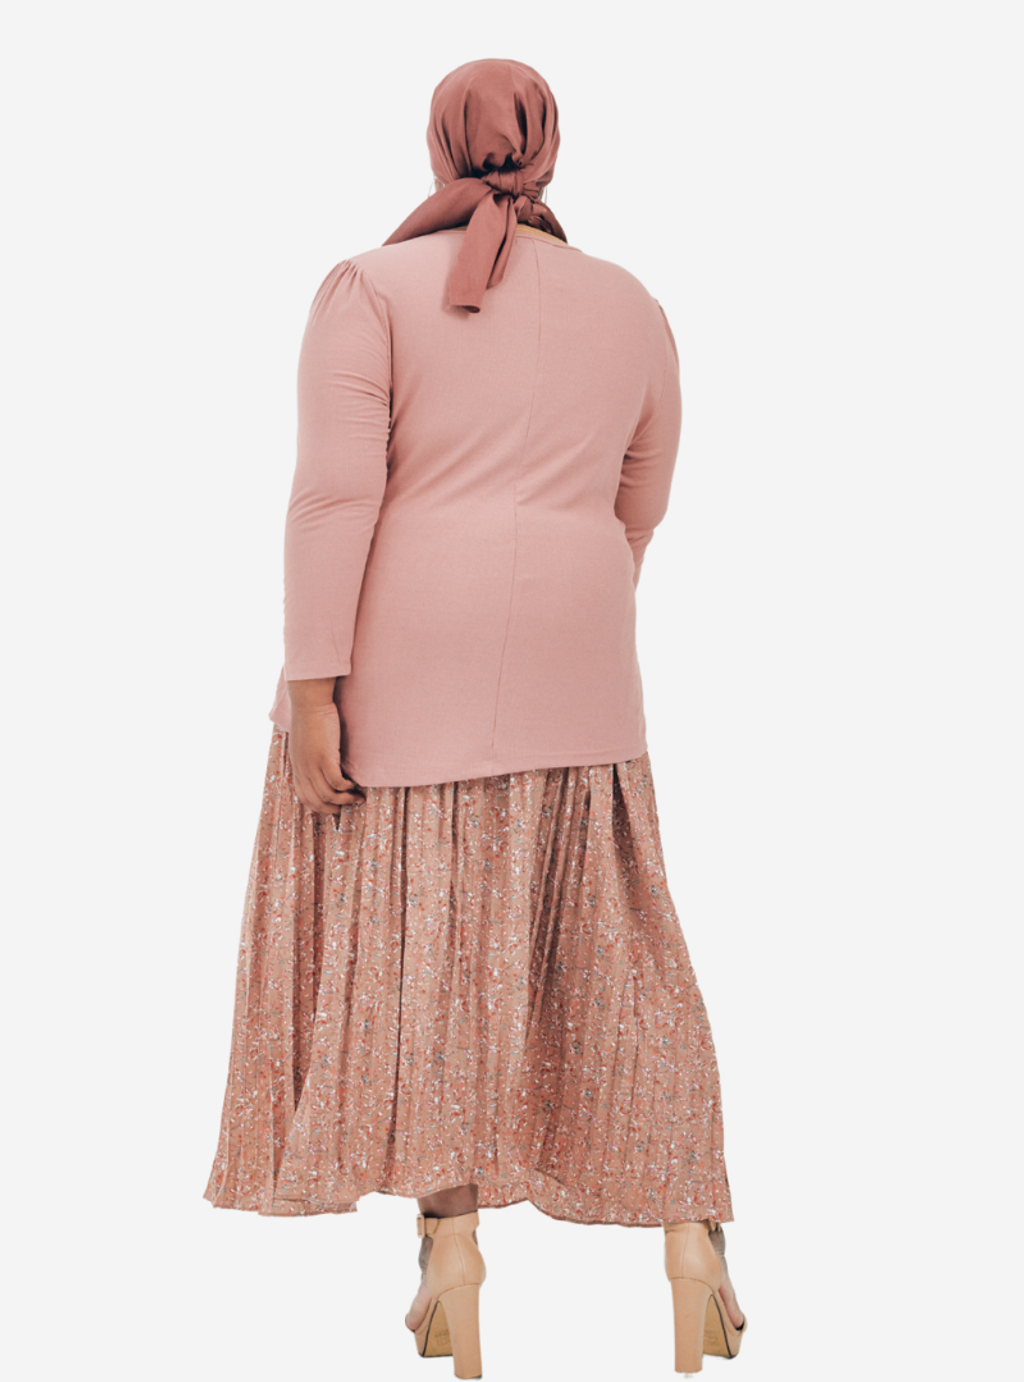 Copy of Description Long Sleeve Asymetrical Puff Sleeve Stretchable - Very Sheer - No - Ribbed Cotton - Long Skirt  Ukur lilit pada punggung (Hip) boleh stretch up to 3 to 6 (19).png